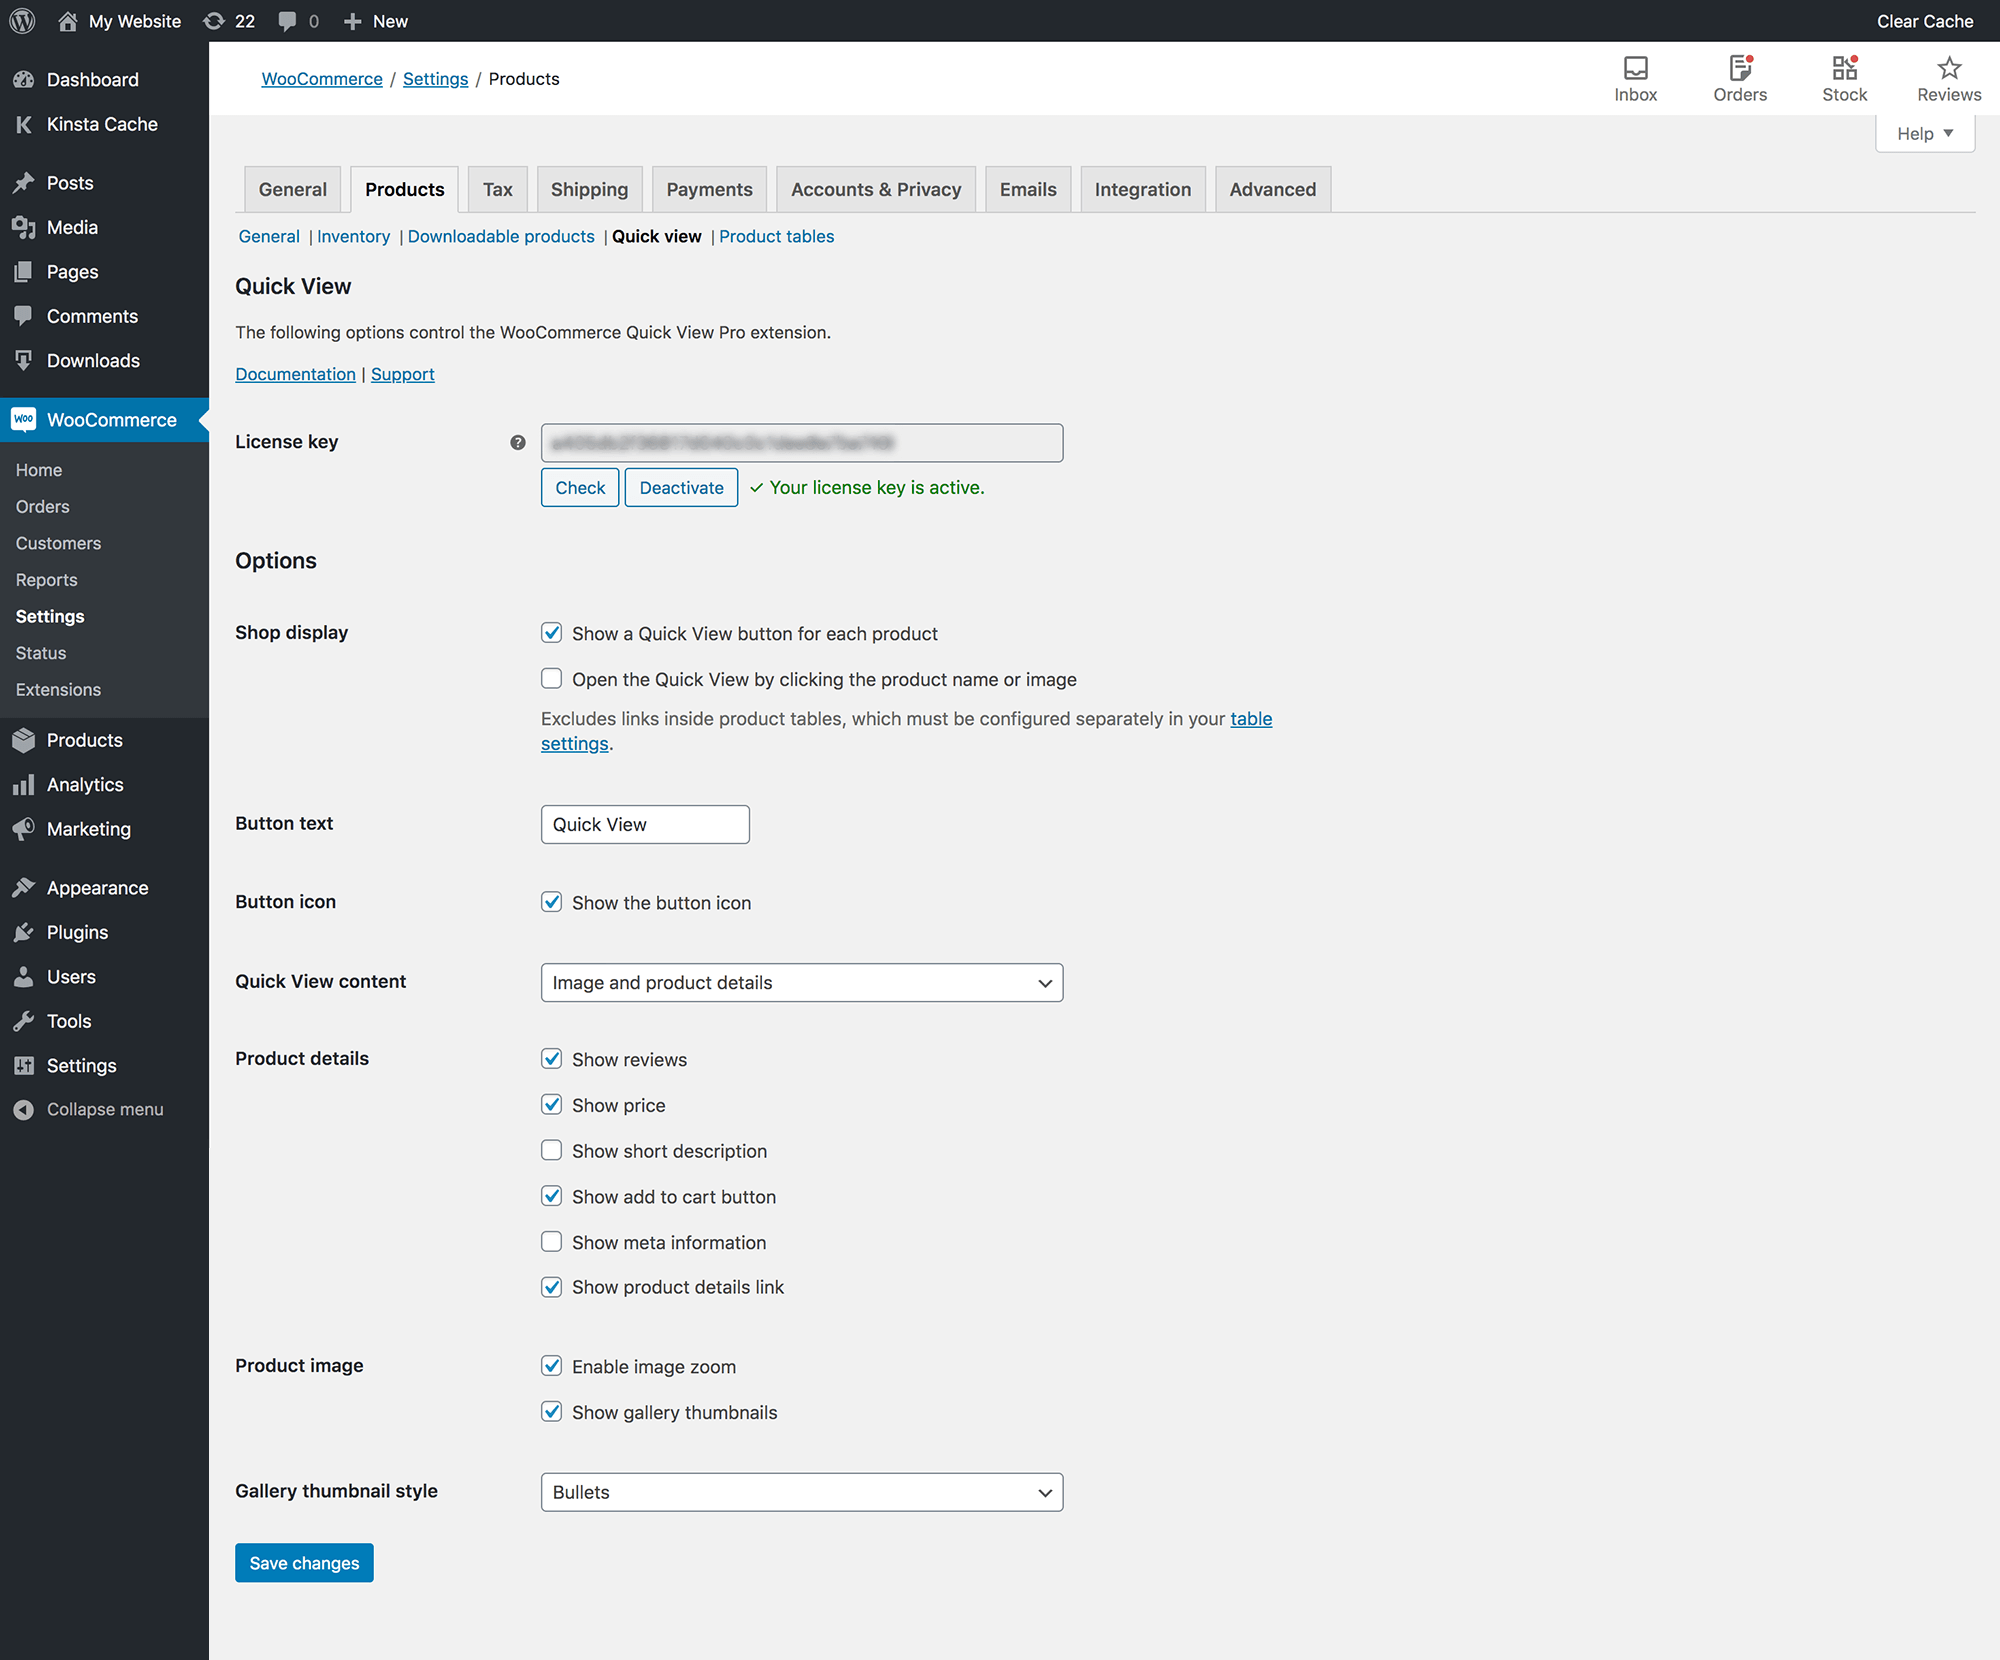 WooCommerce Quick View Pro plugin settings page